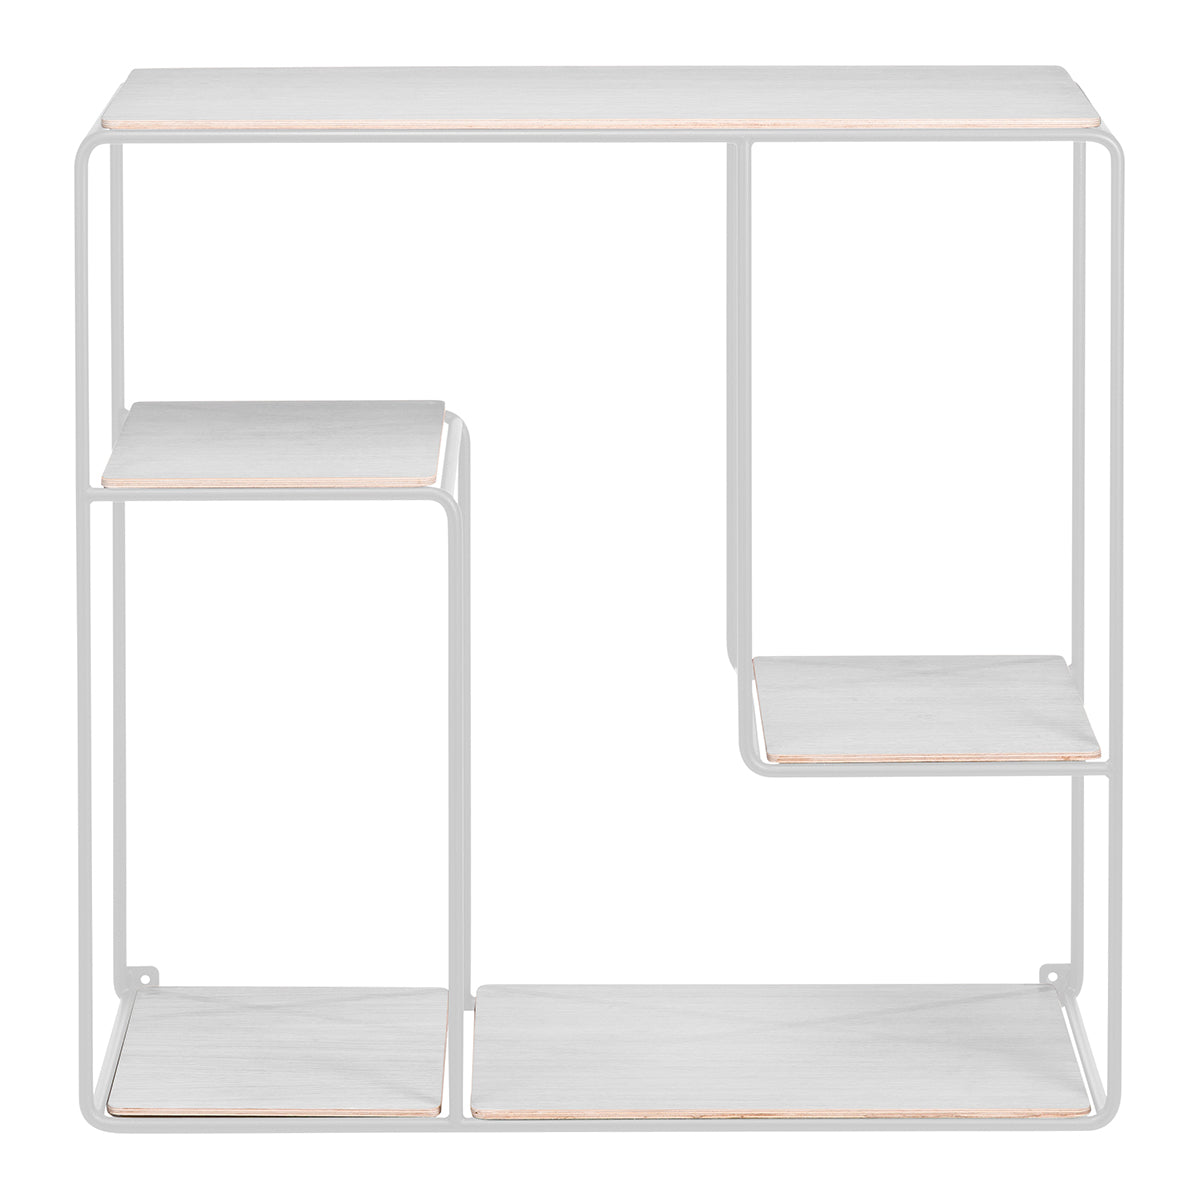 Anywhere 2 x 2 (5 Shelves) - Korridor - Do Shop